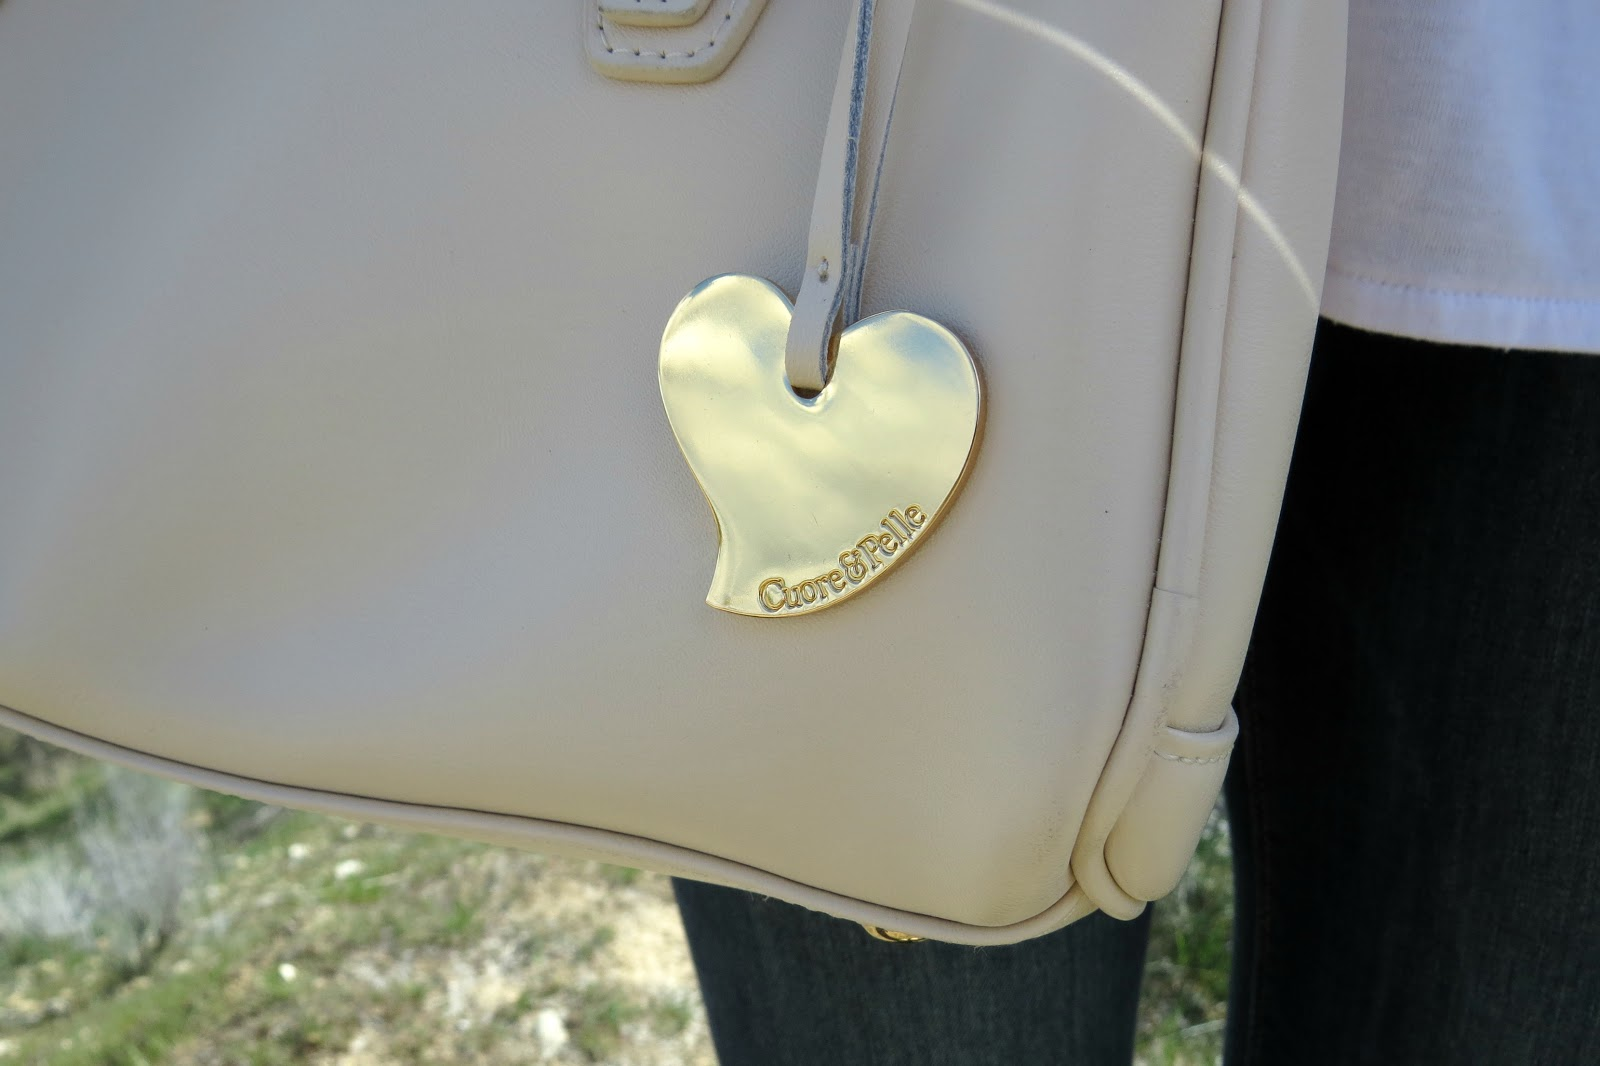 cuore and pelle celeste mini satchel